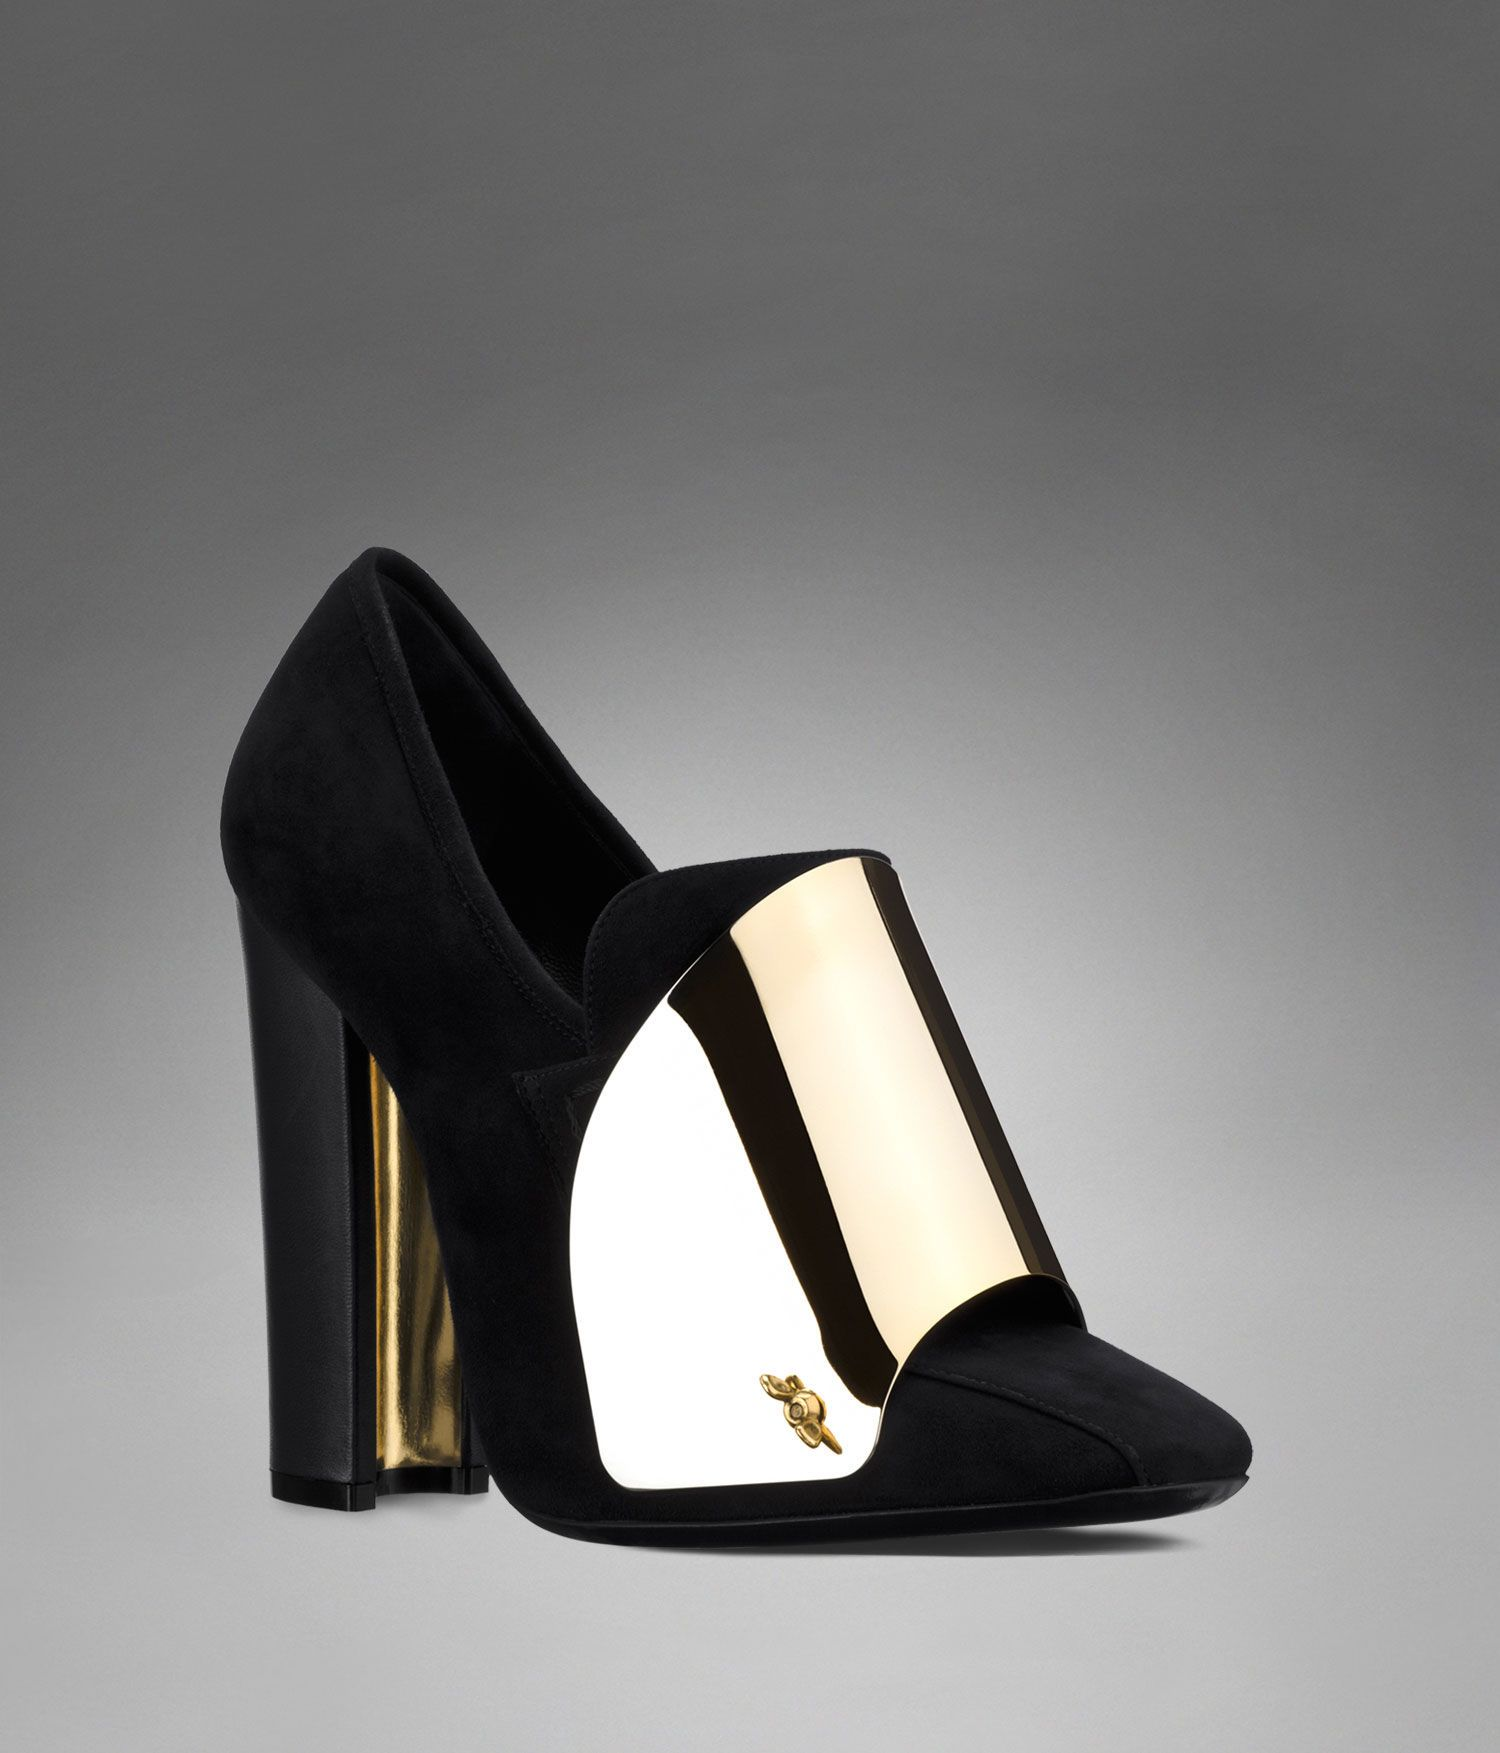 These shoes.....